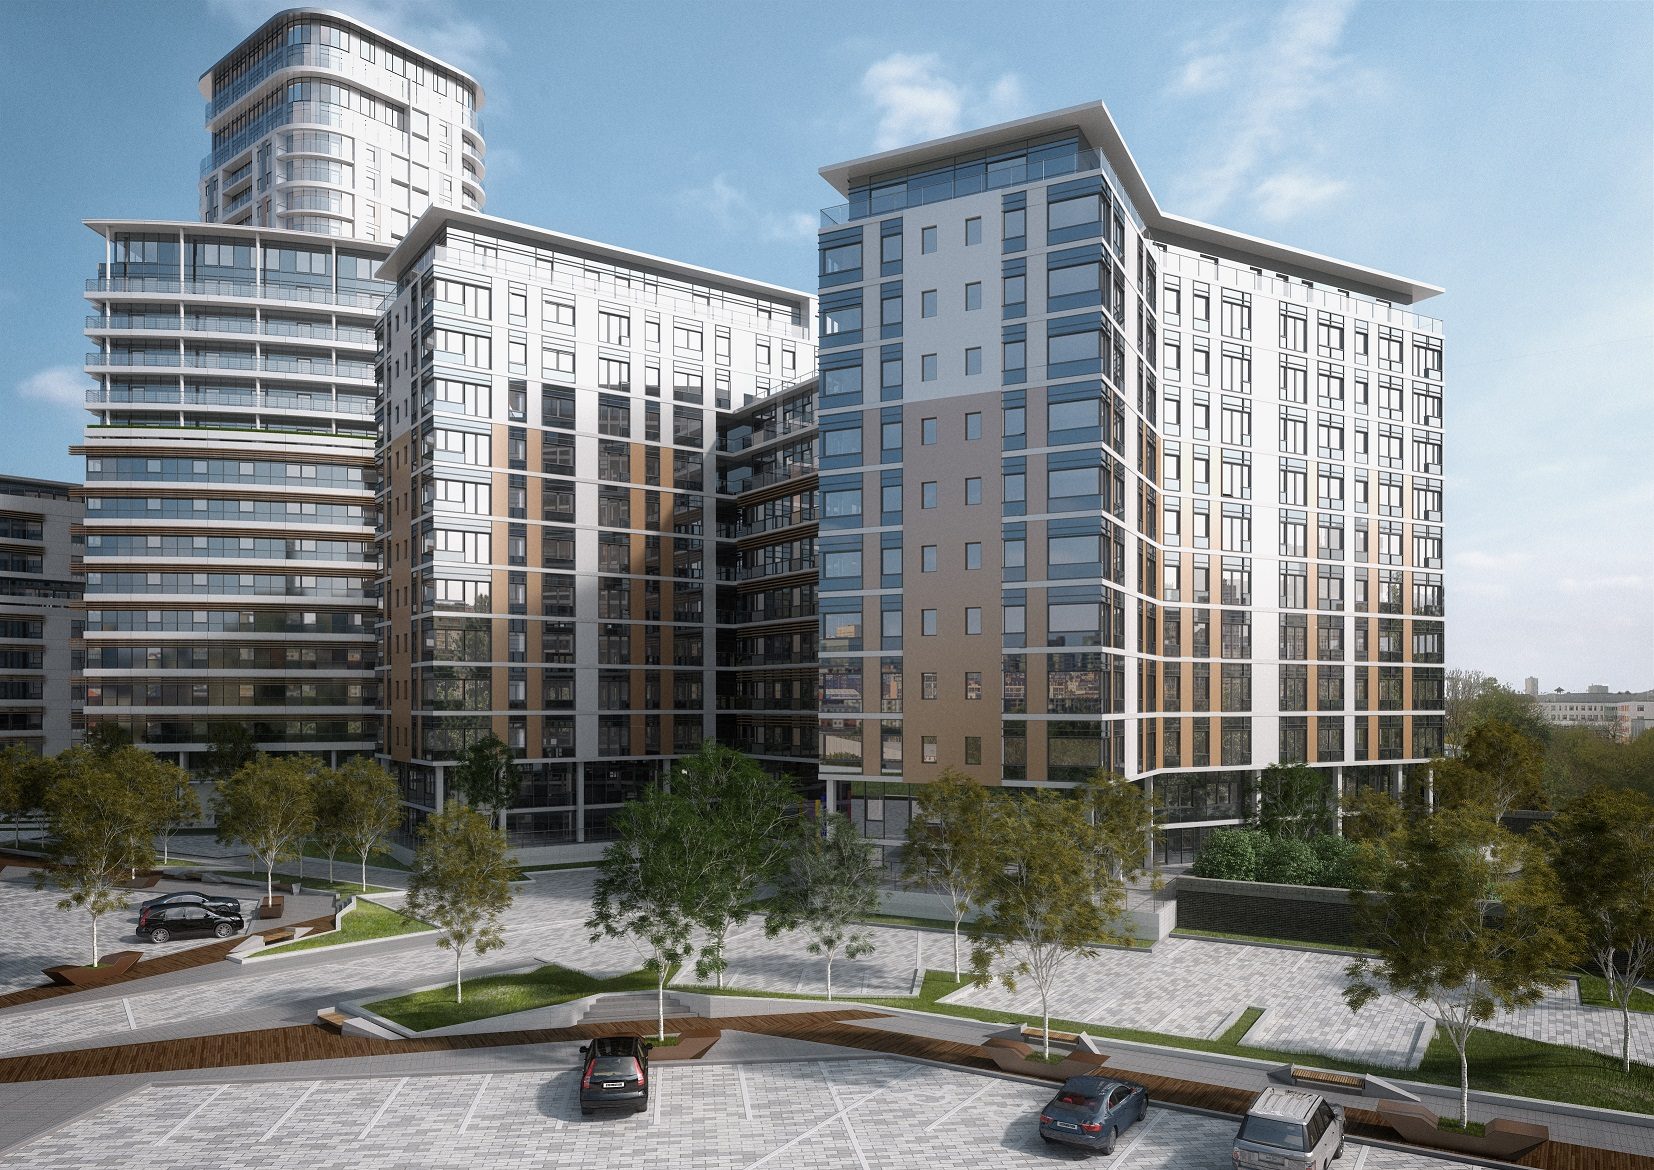 Latimer Clarion Housing Group S Development Company Has Acquired A Site In Salford Quays On Which It Will Deliver 272 New Apartments